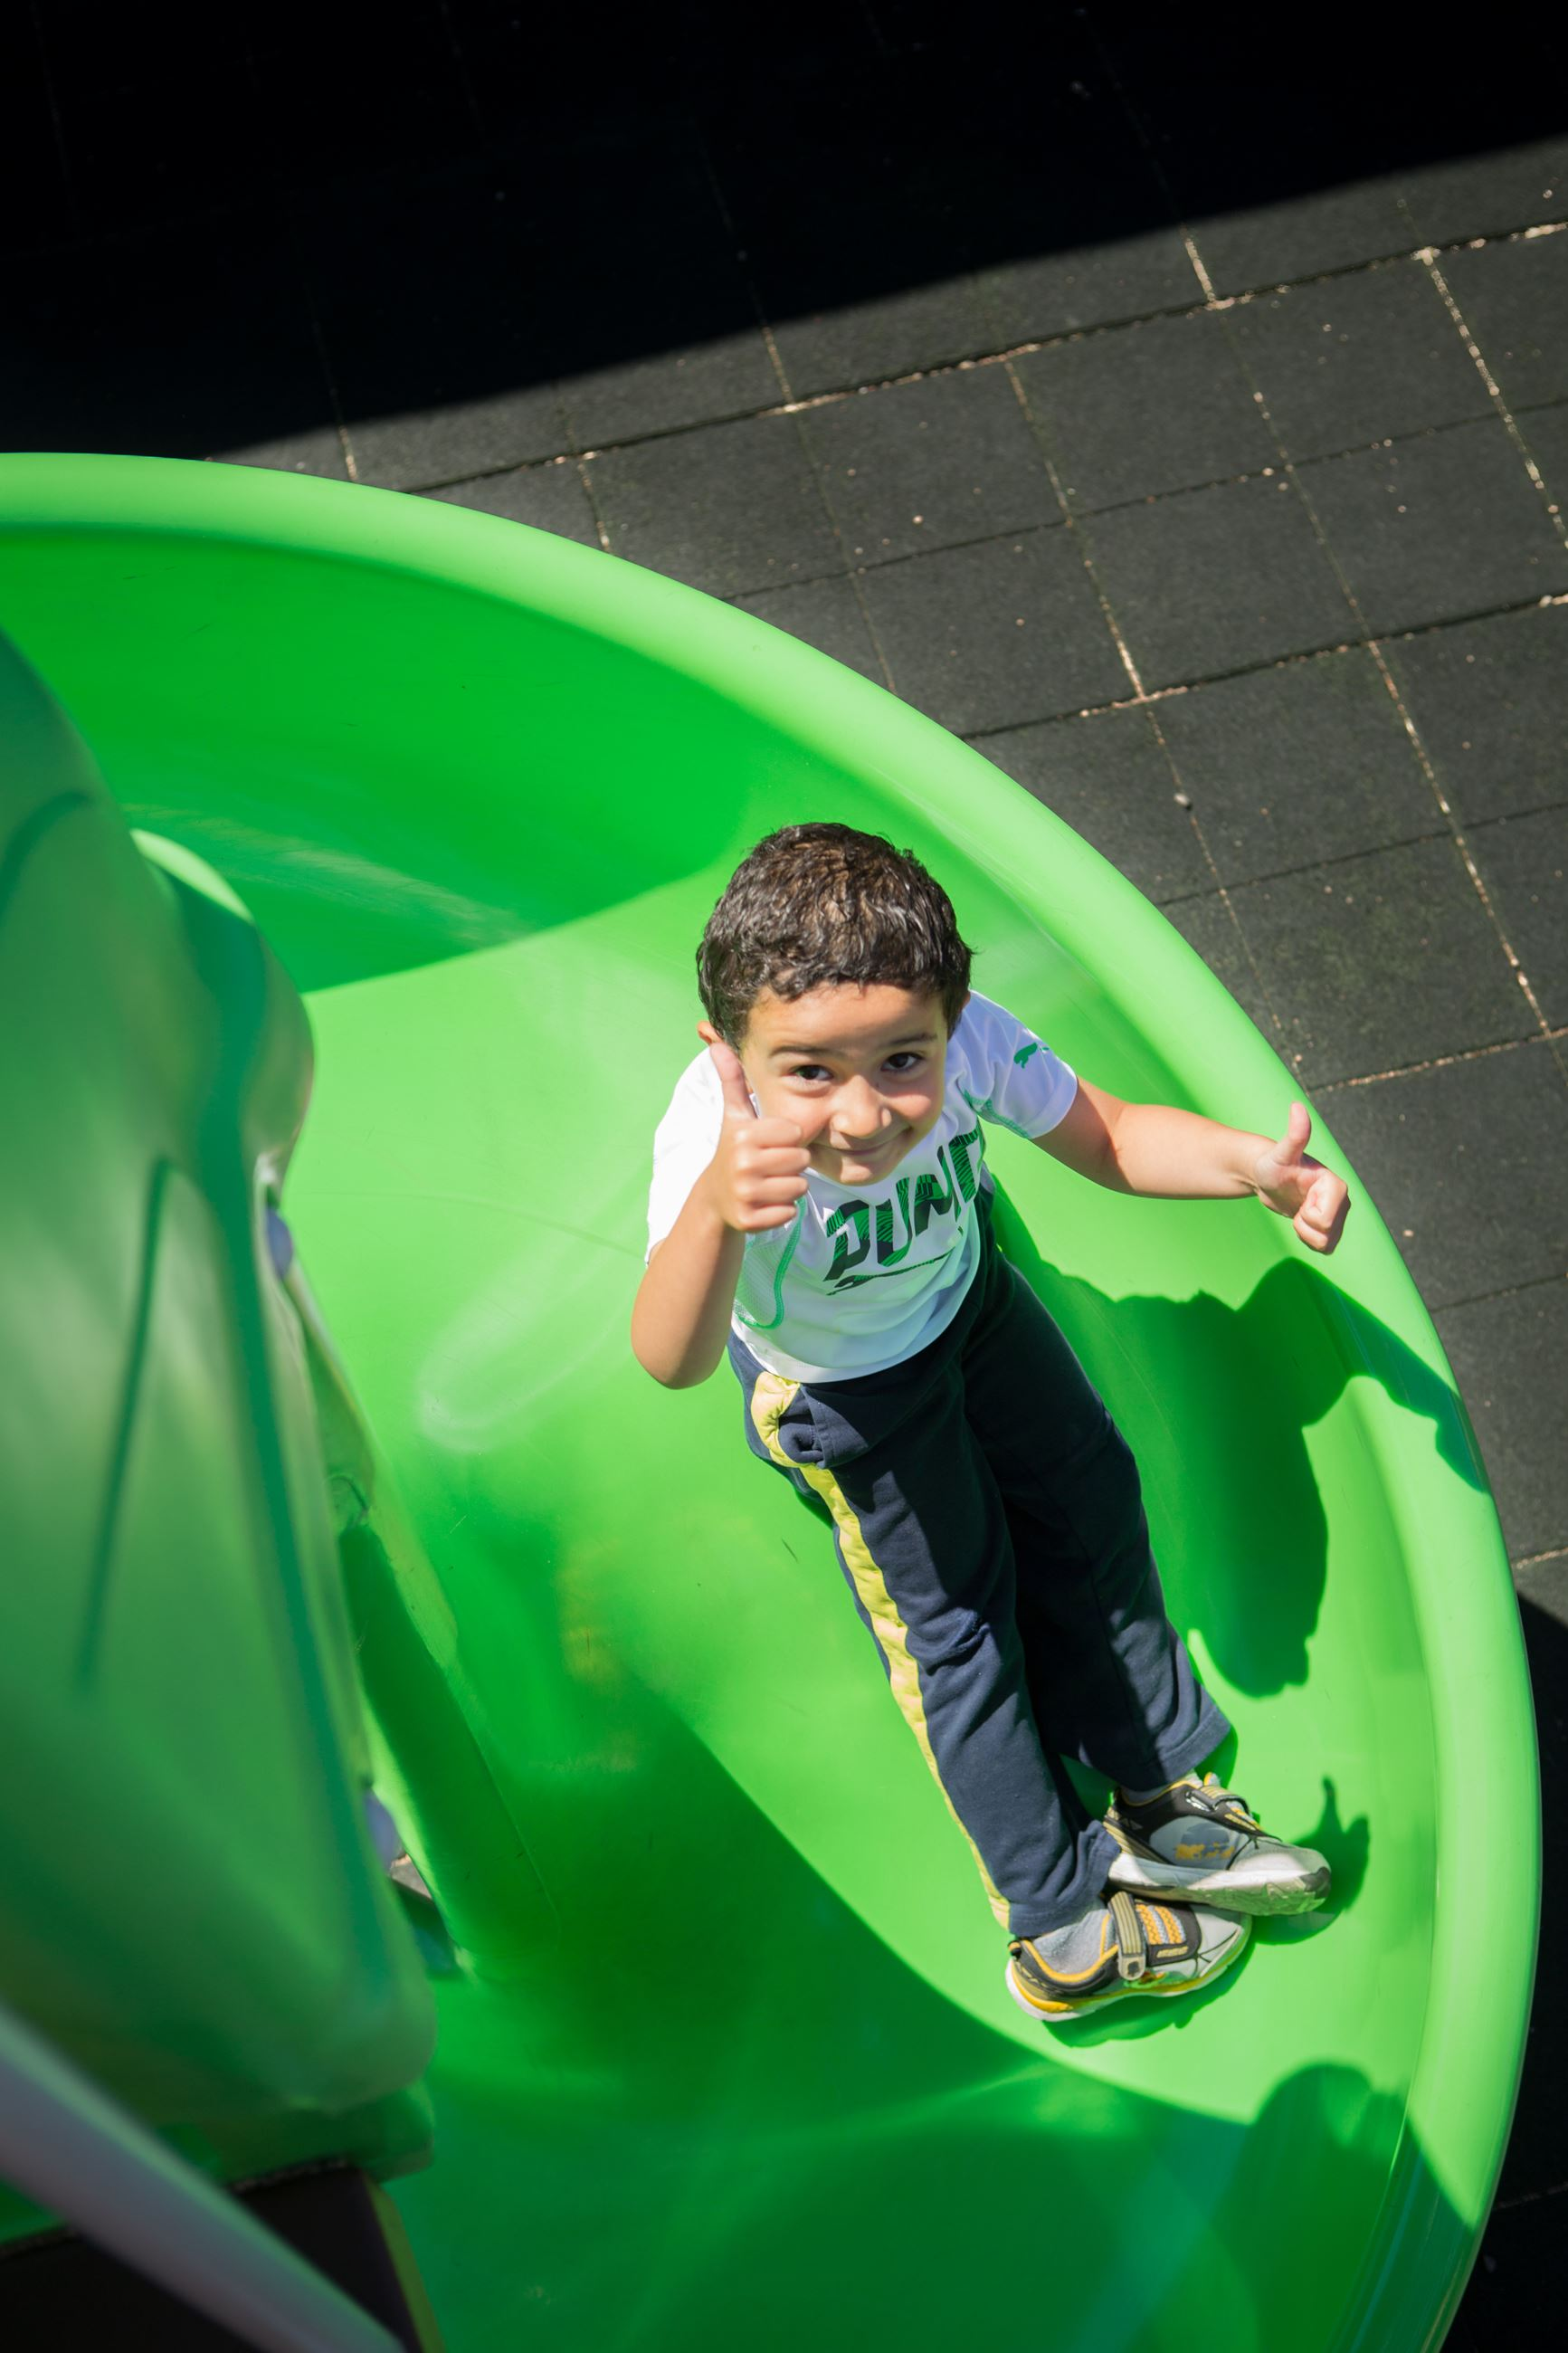 Boy on the slide, giving a thumbs up